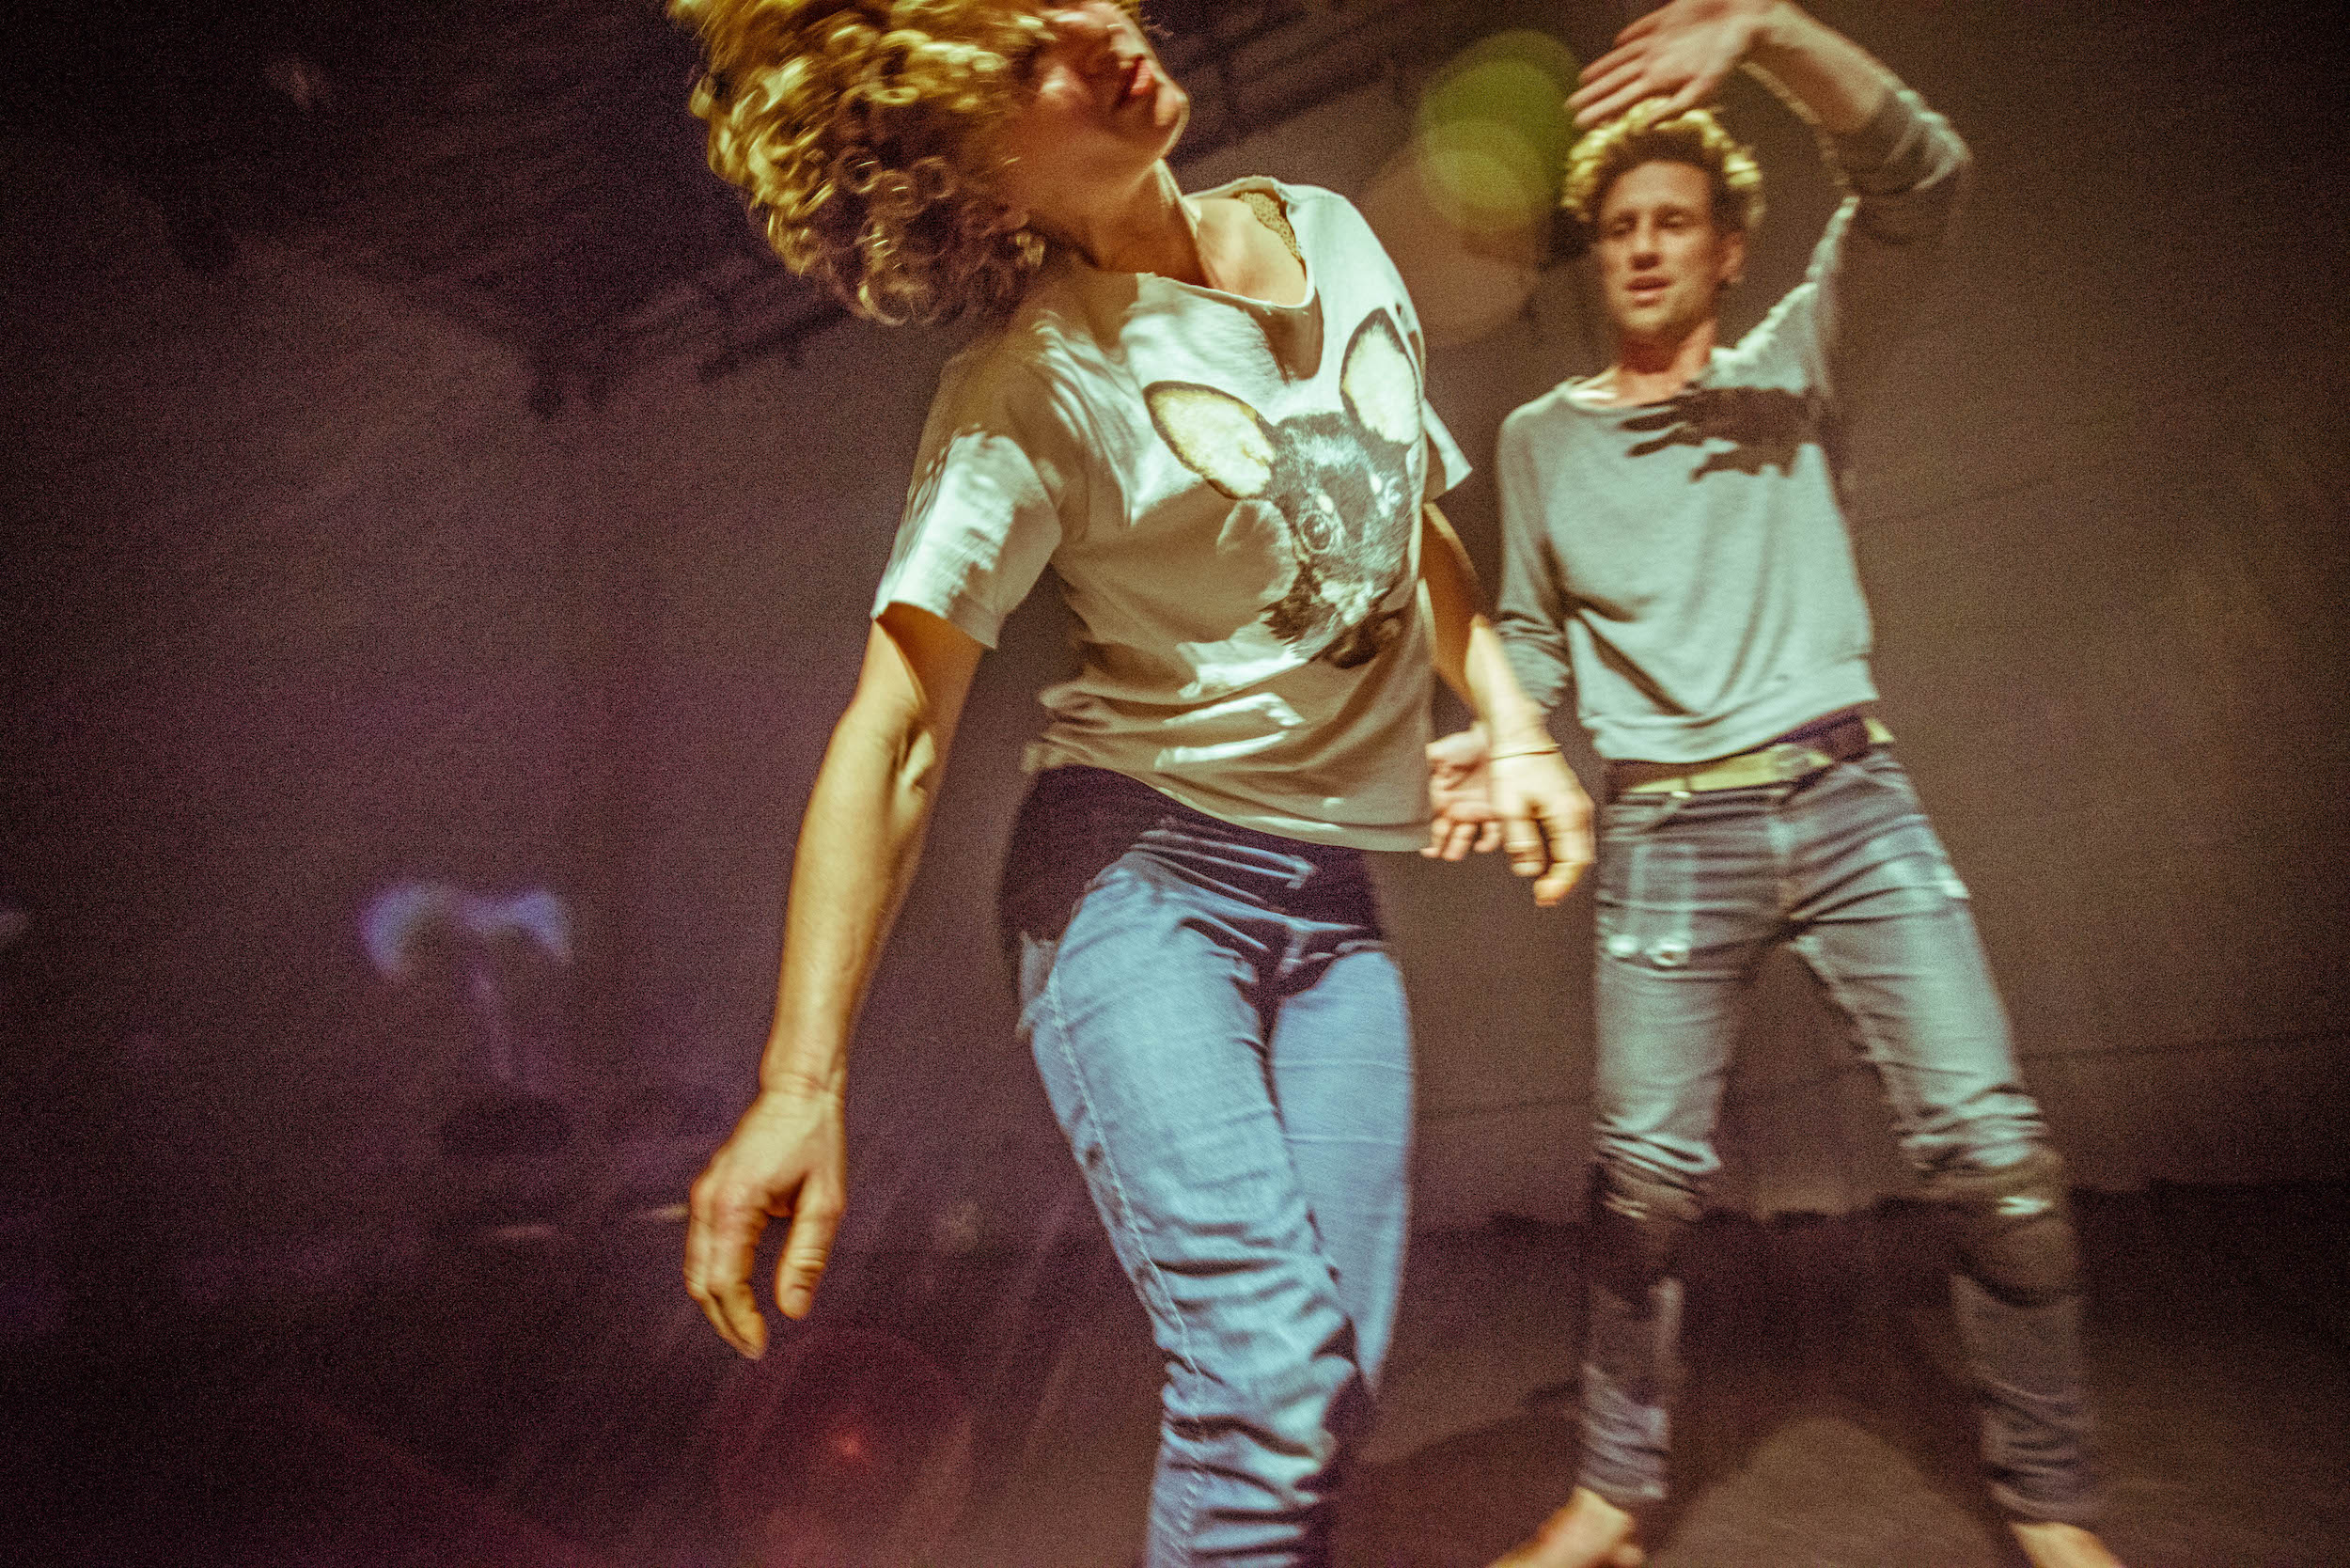 Action shot of curly-headed Crain (in chihuahua tee) & Anderson (in worn jeans and knee pads) swaying with streaks of light. (photo: Robbie Sweeny)